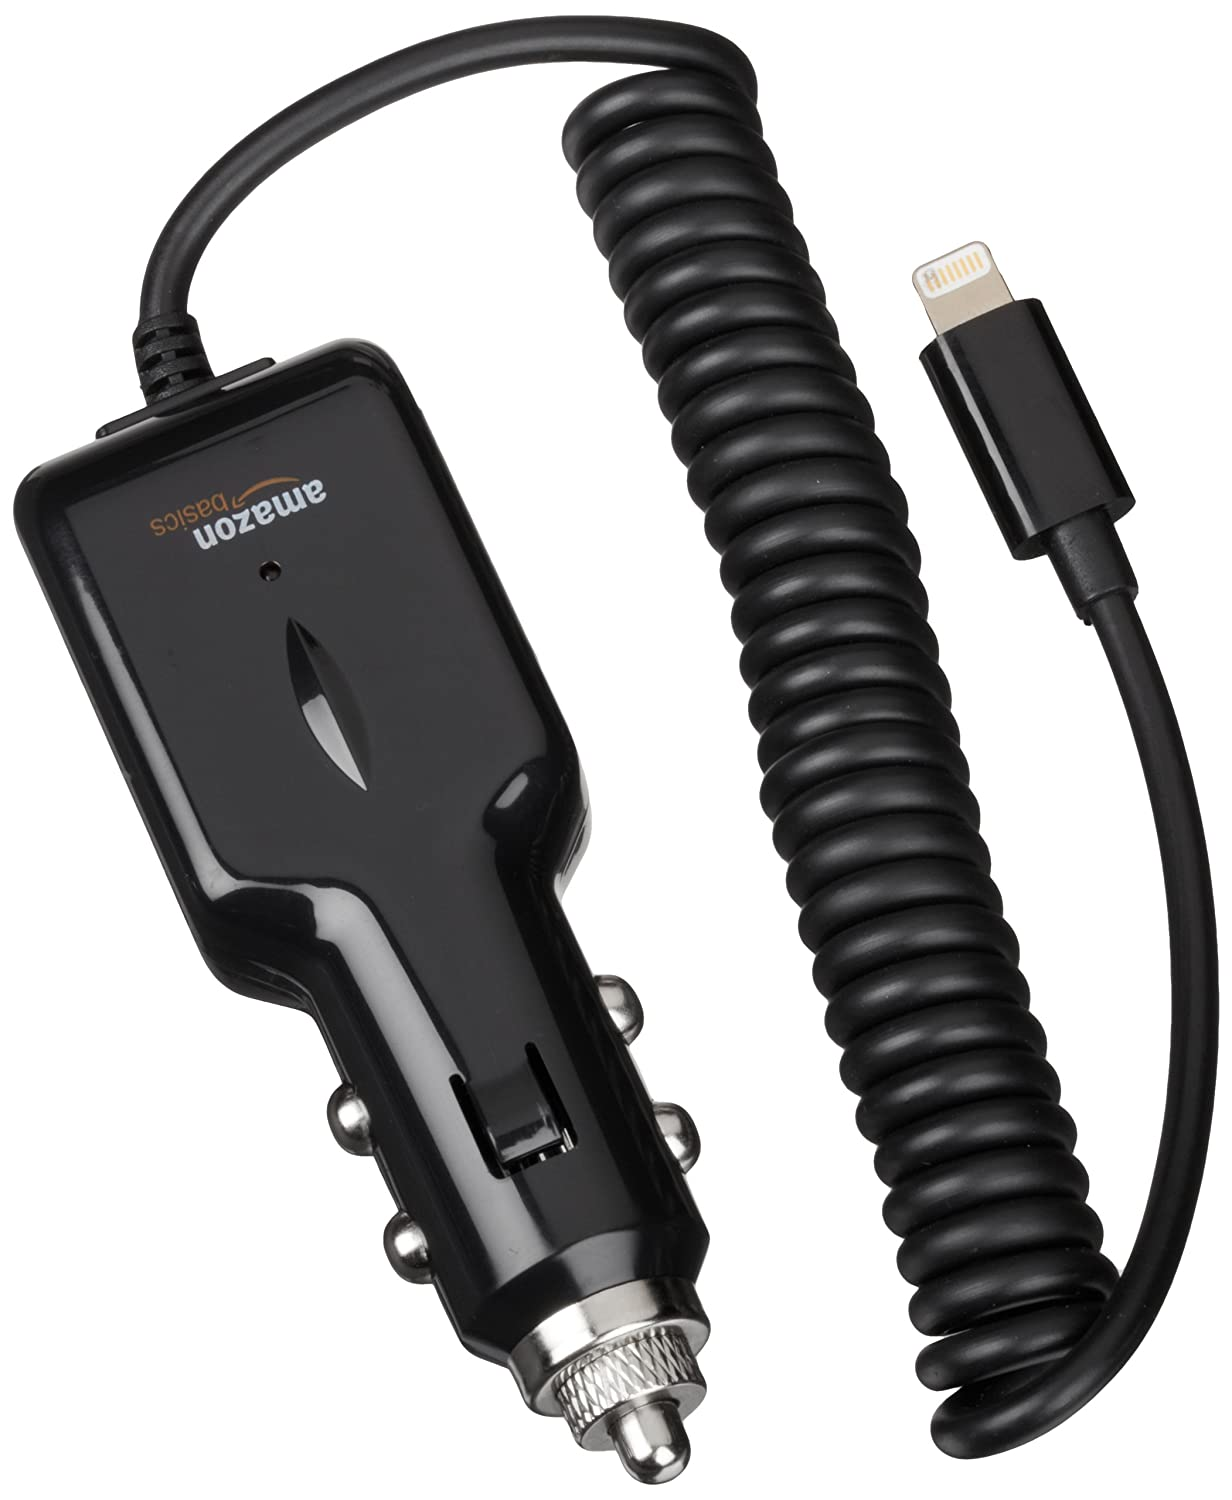 AmazonBasics Apple Certified Lightning Car Charger - Frustration Free Packaging - Black